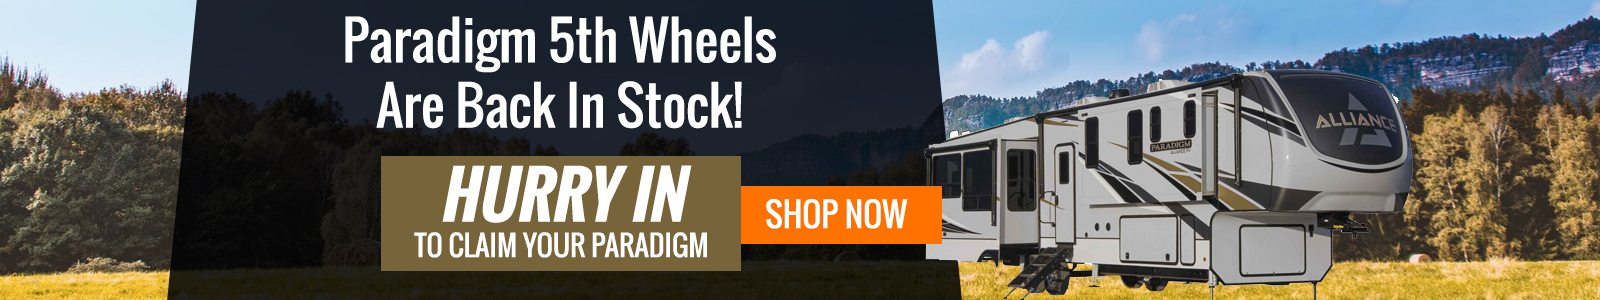 Paradigm Fifth Wheel Just Arrived